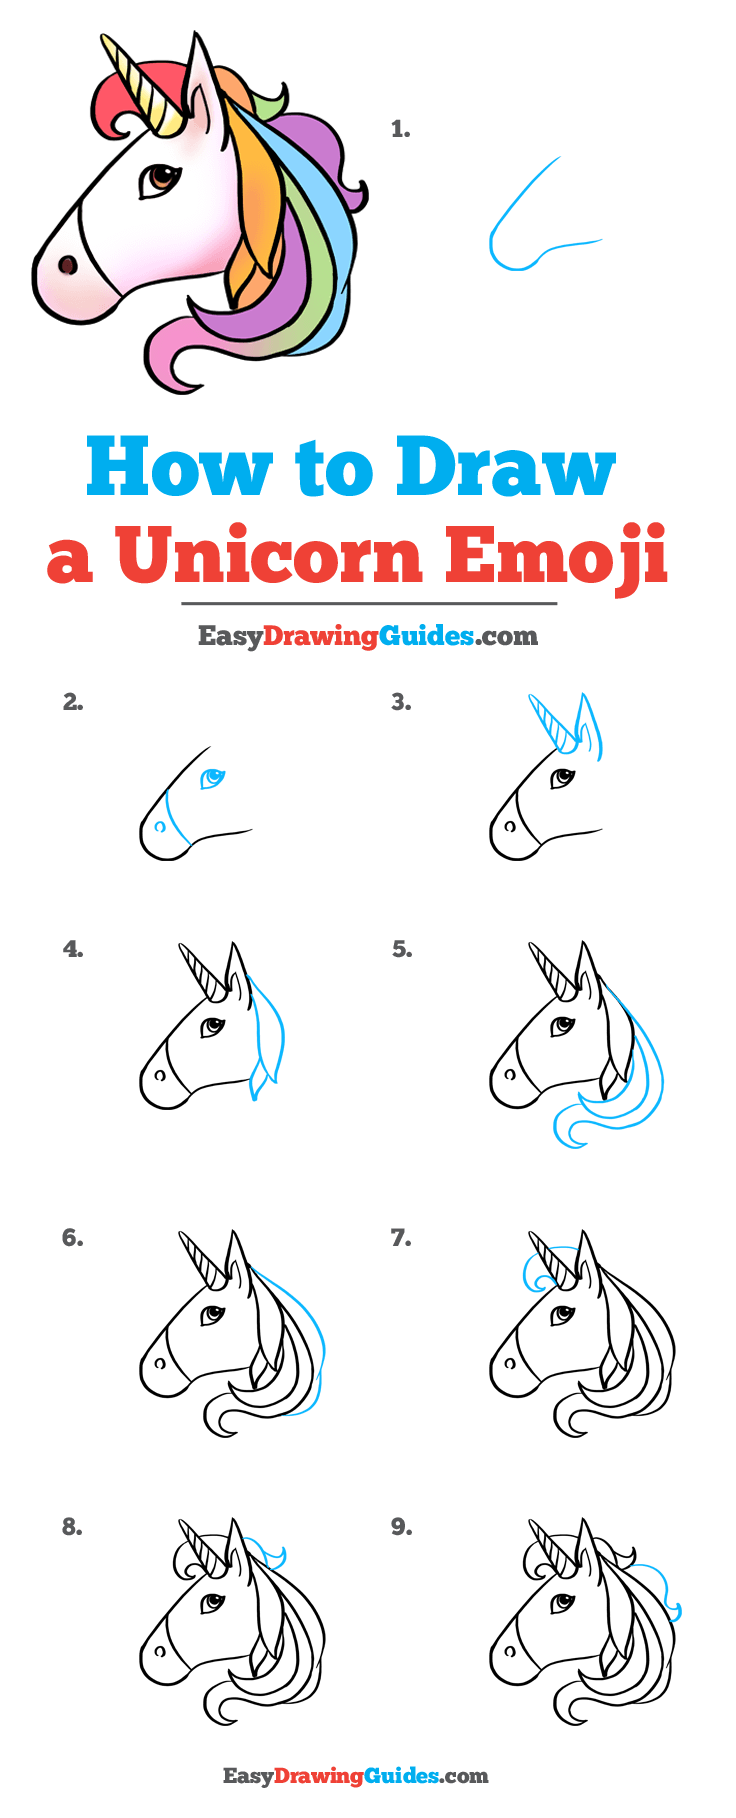 How to Draw Unicorn Emoji